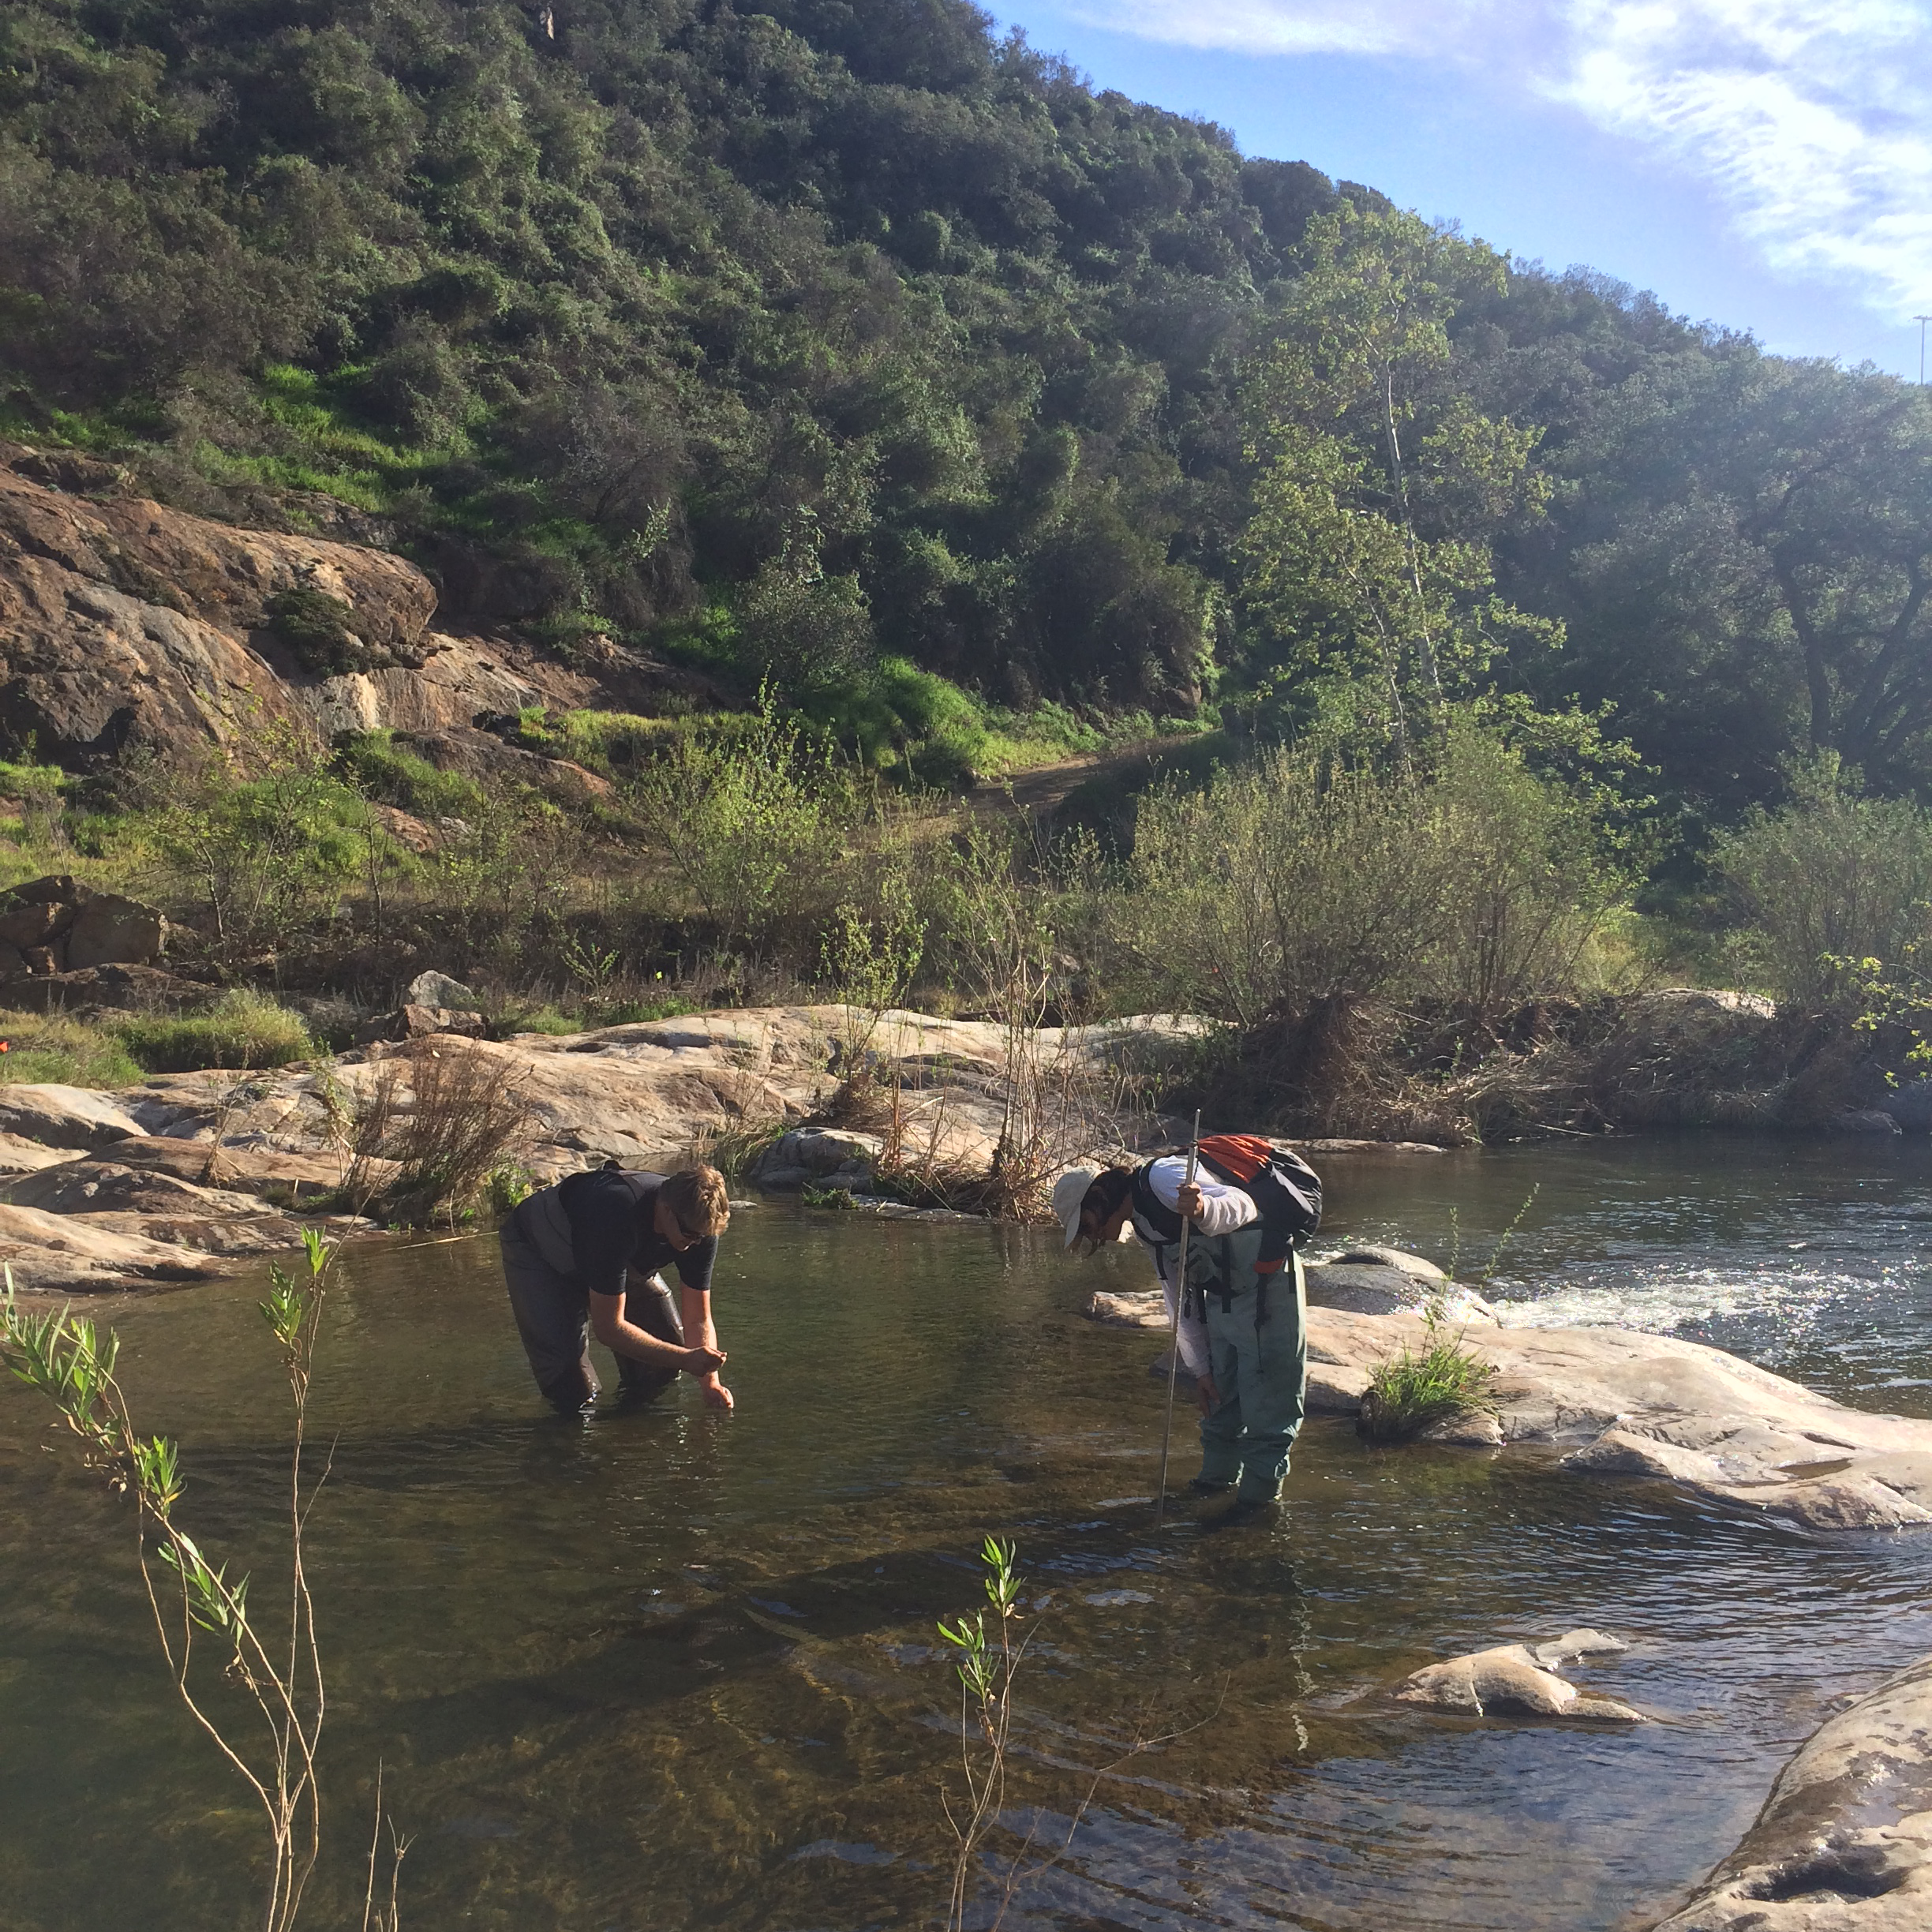 Justin Vanderwal and Mayra Molina during a bioassessment (measuring water level and evaluating the habitat). Image: Susanne Theroux